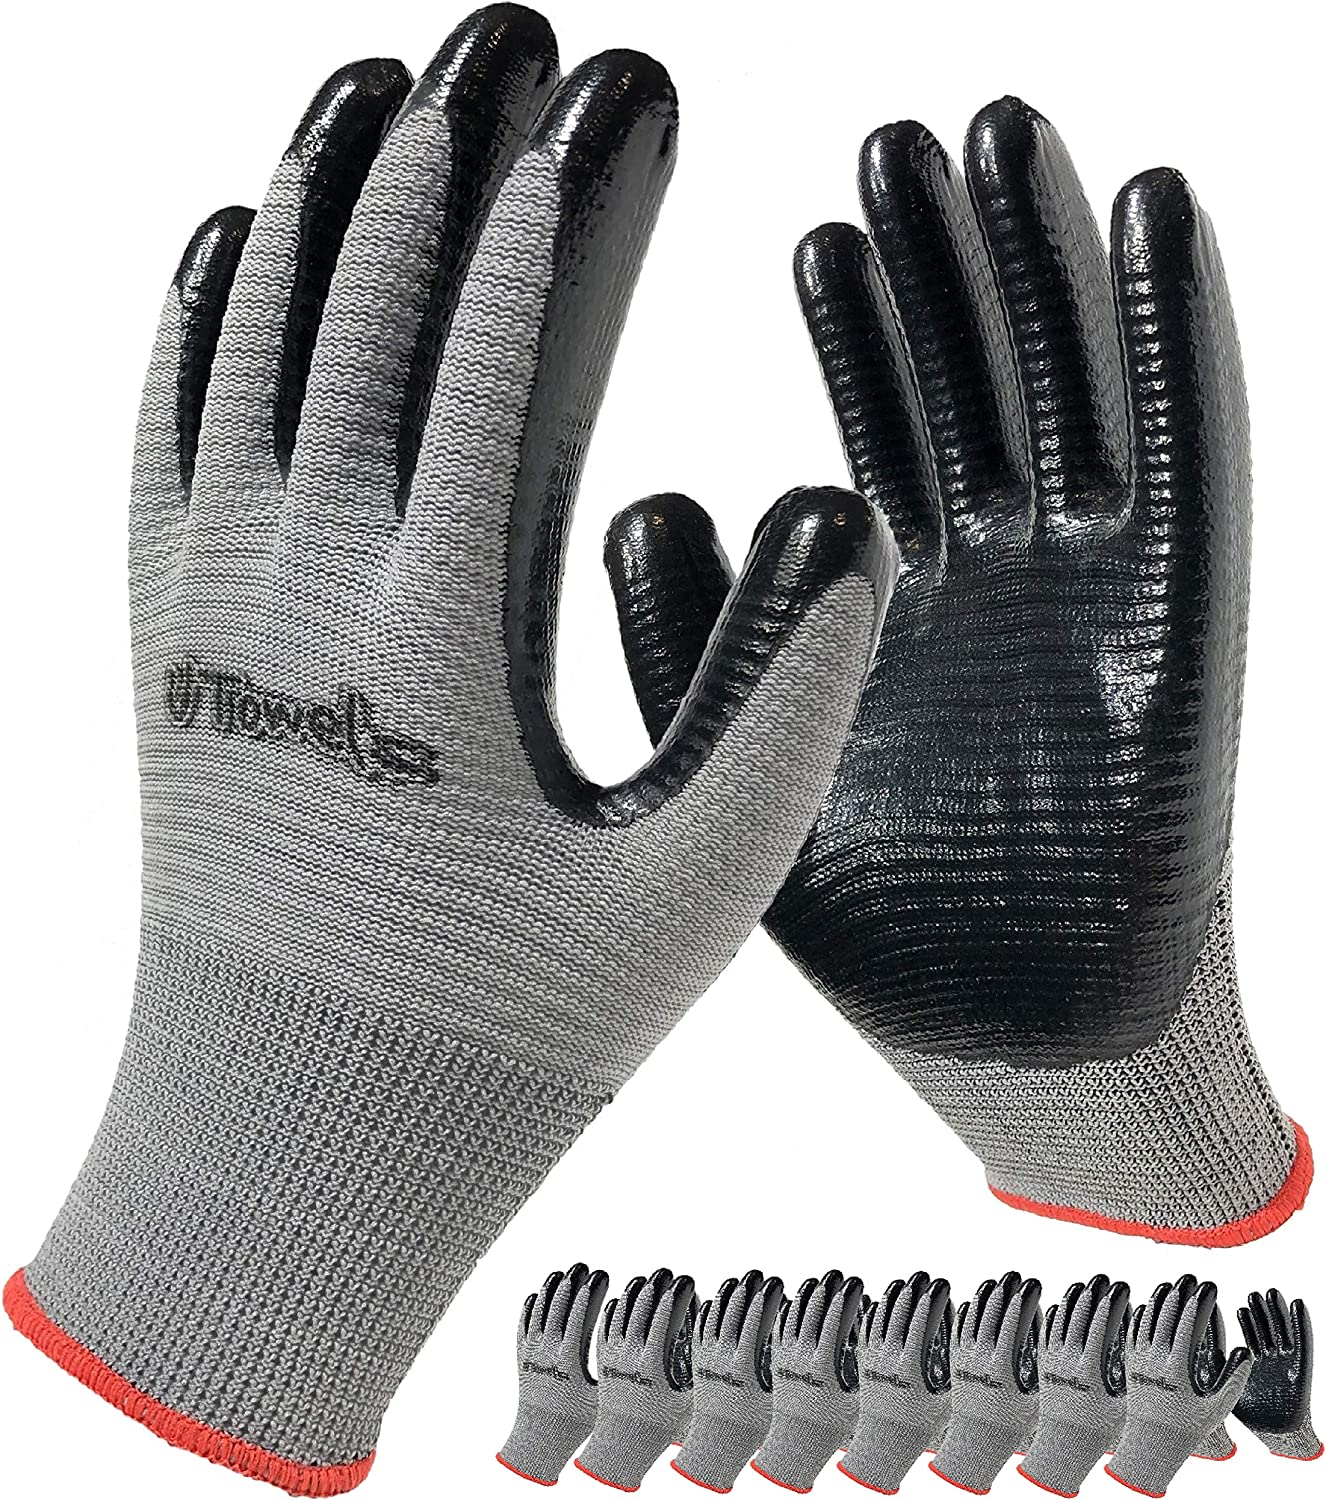 Coated Rubber Work Gloves, 8-Pair Pack, Nitrile Firm Grip Glove for General Purpose, Gardening, for Men and Women (Size Small, Grey)